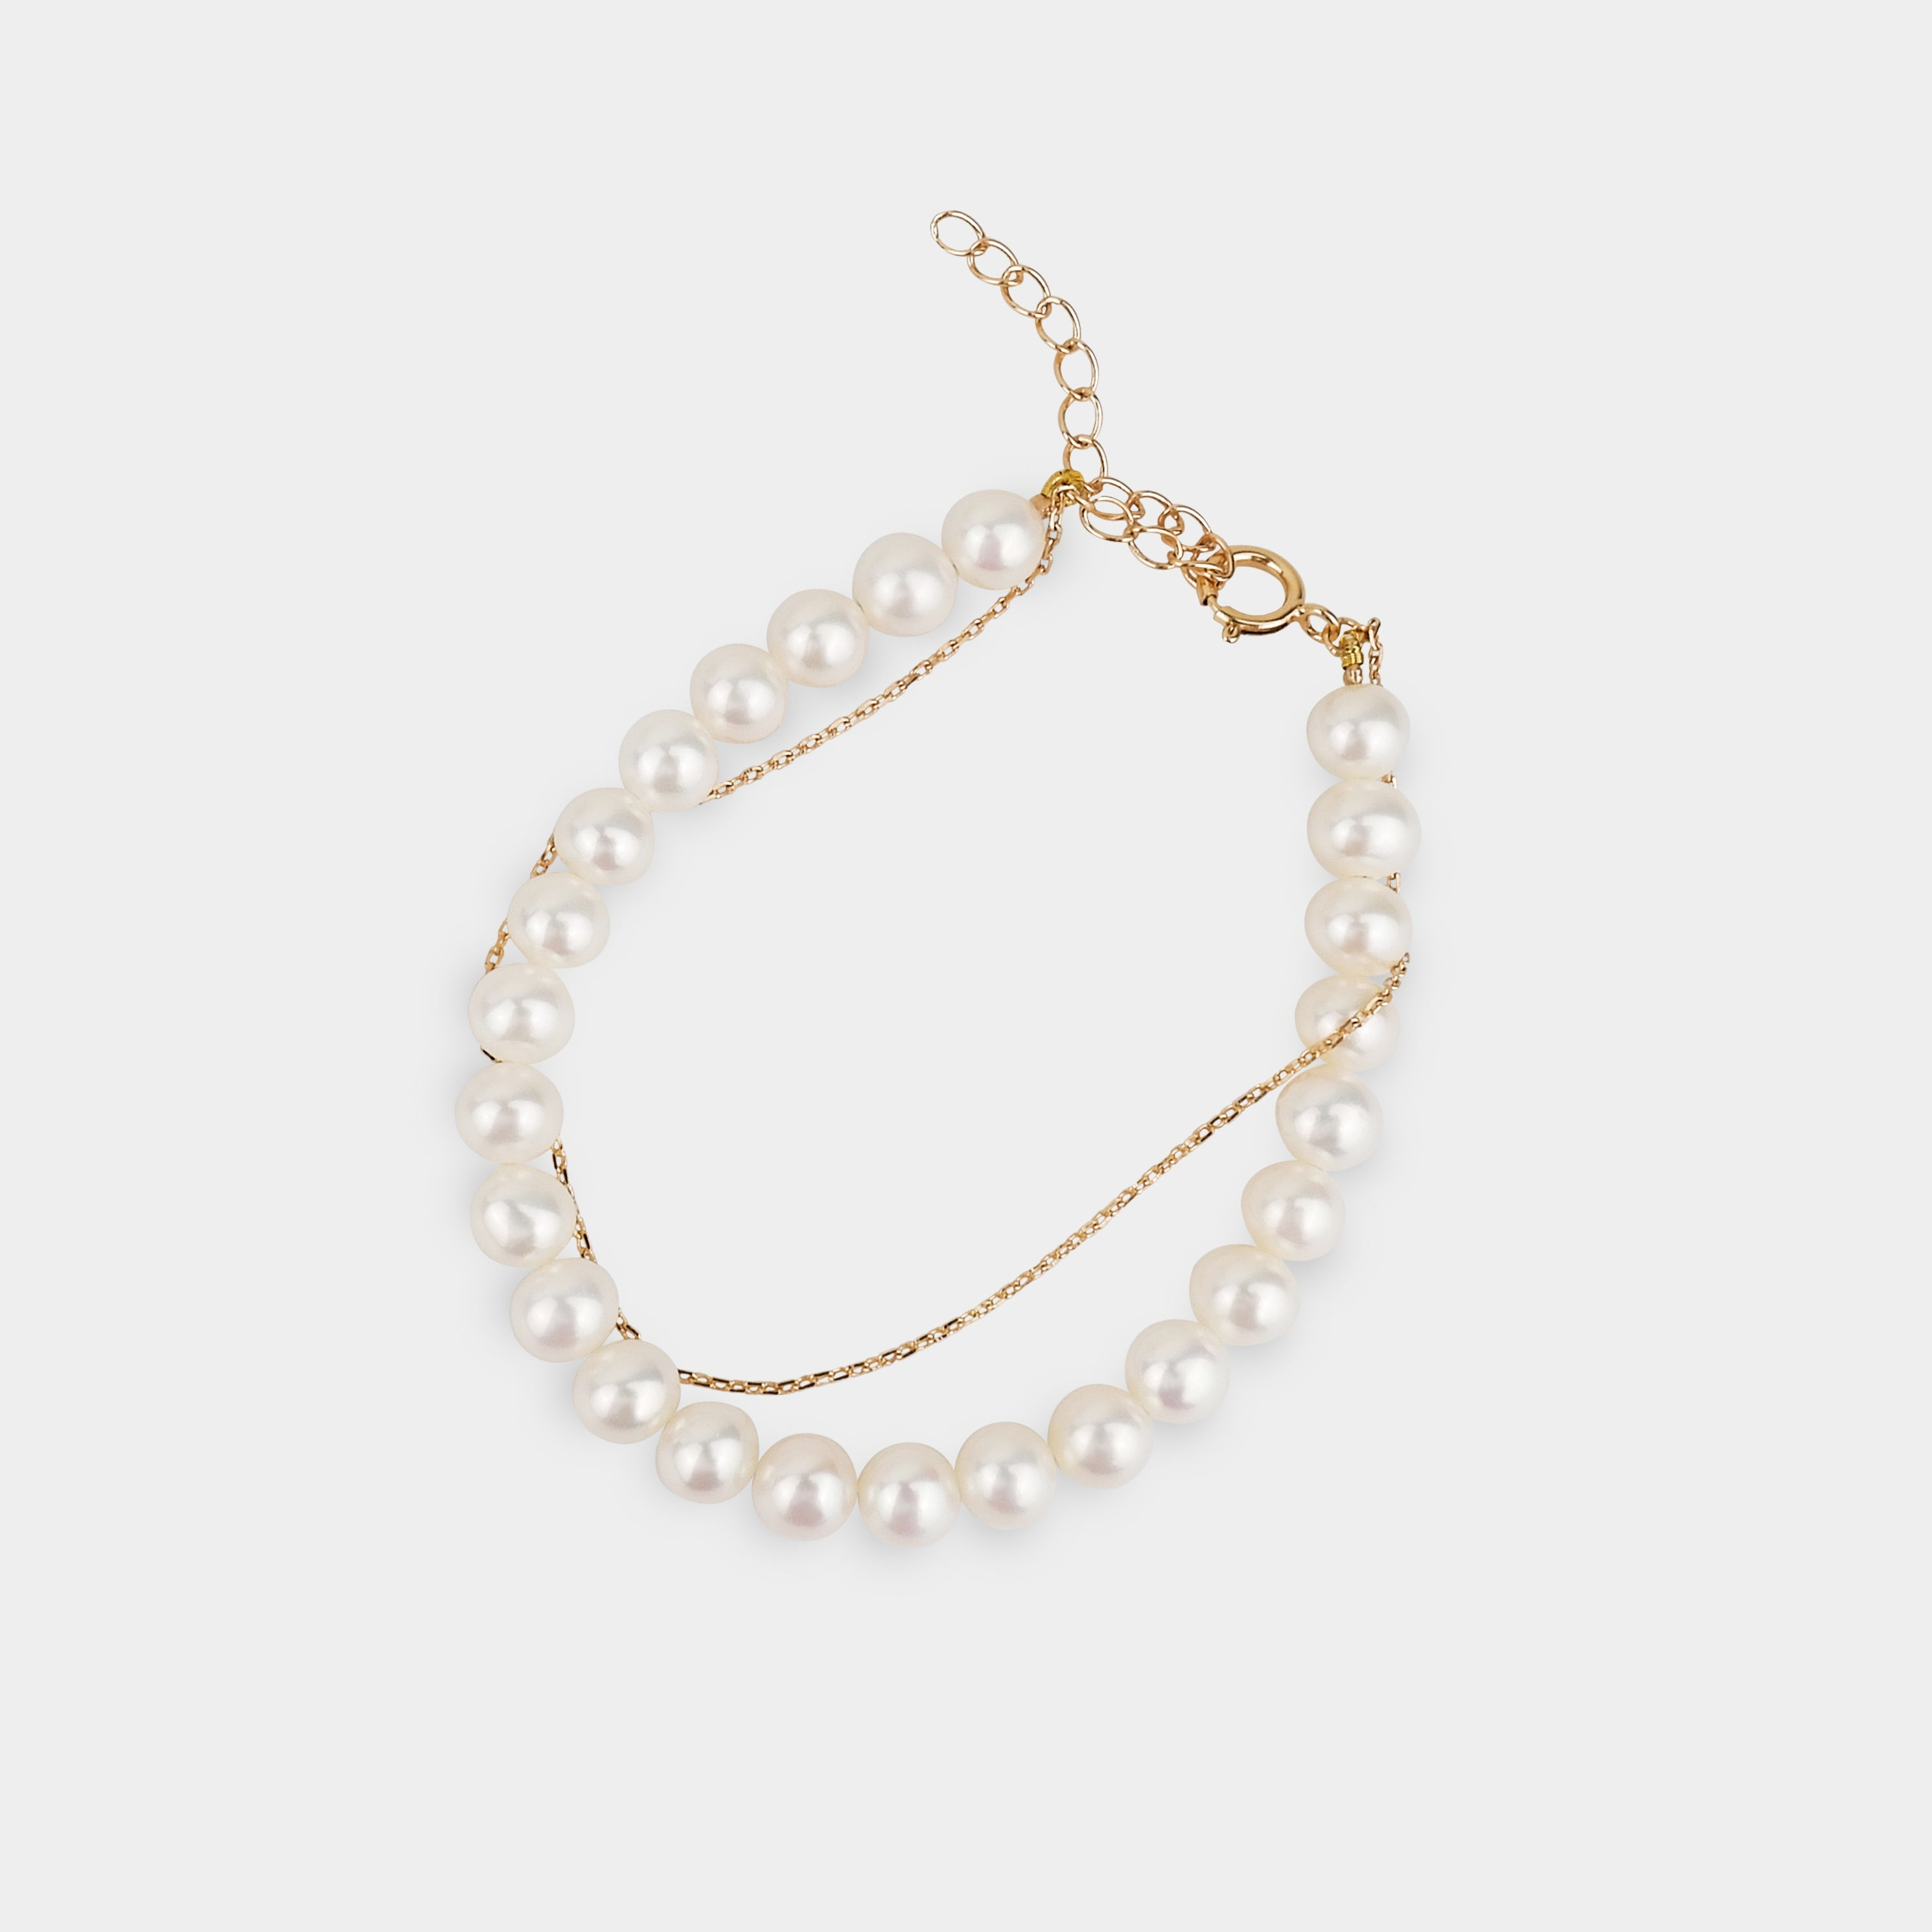 THE CLASSIC PEARL-SILVER LAYERING BRACELET